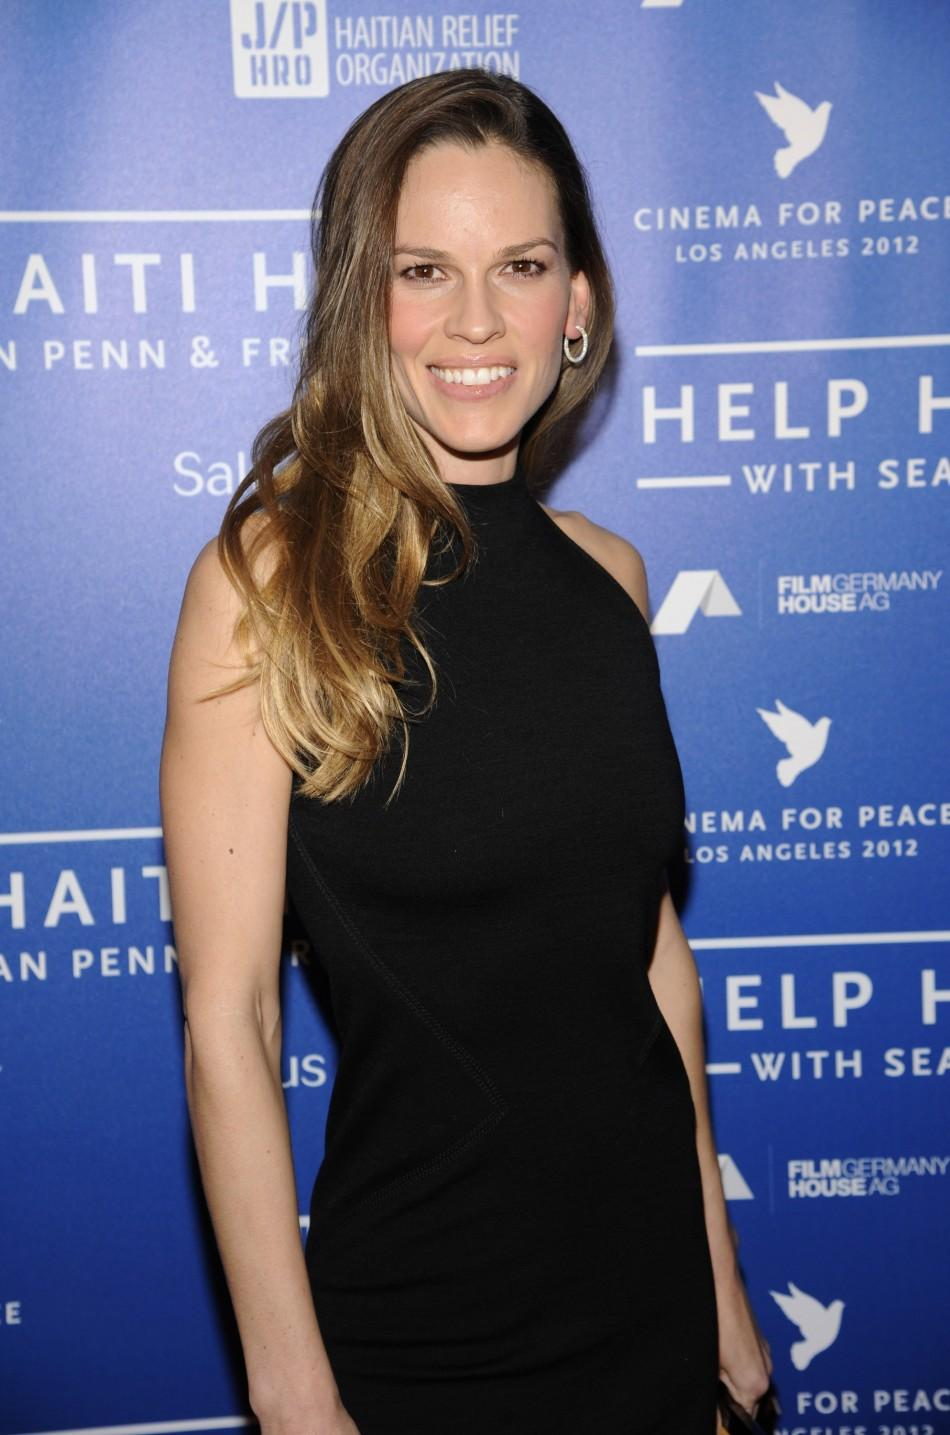 Hollywood Stars at the Cinema for Peace Haiti Relief Fundraising Event